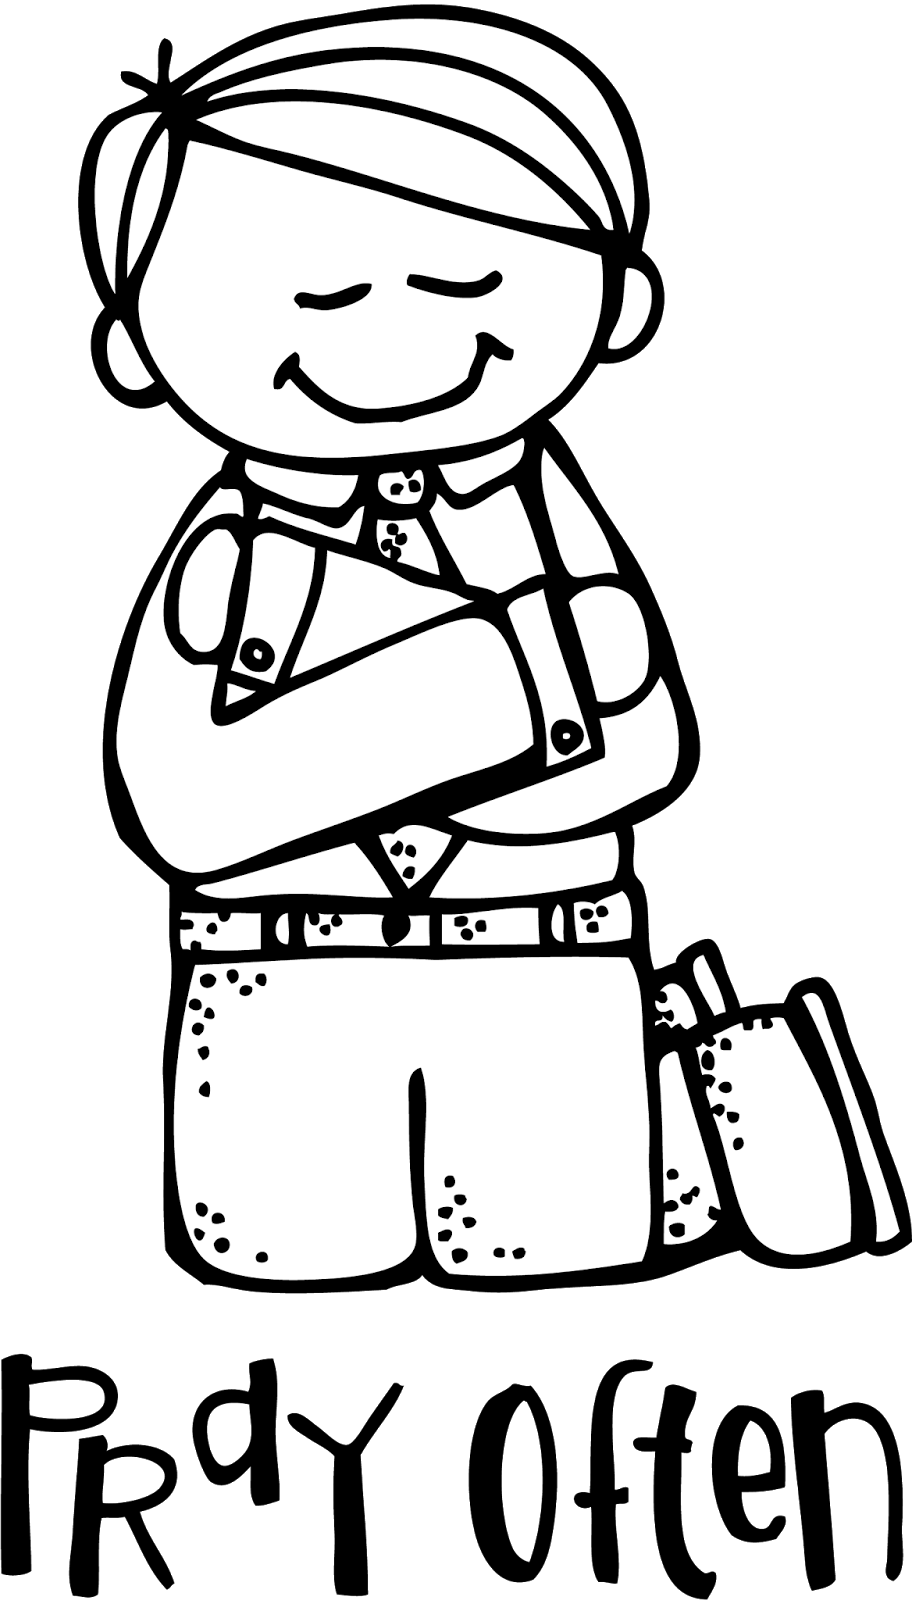 Book Of Mormon Coloring Pages Lds Coloring Pages Friend Issues